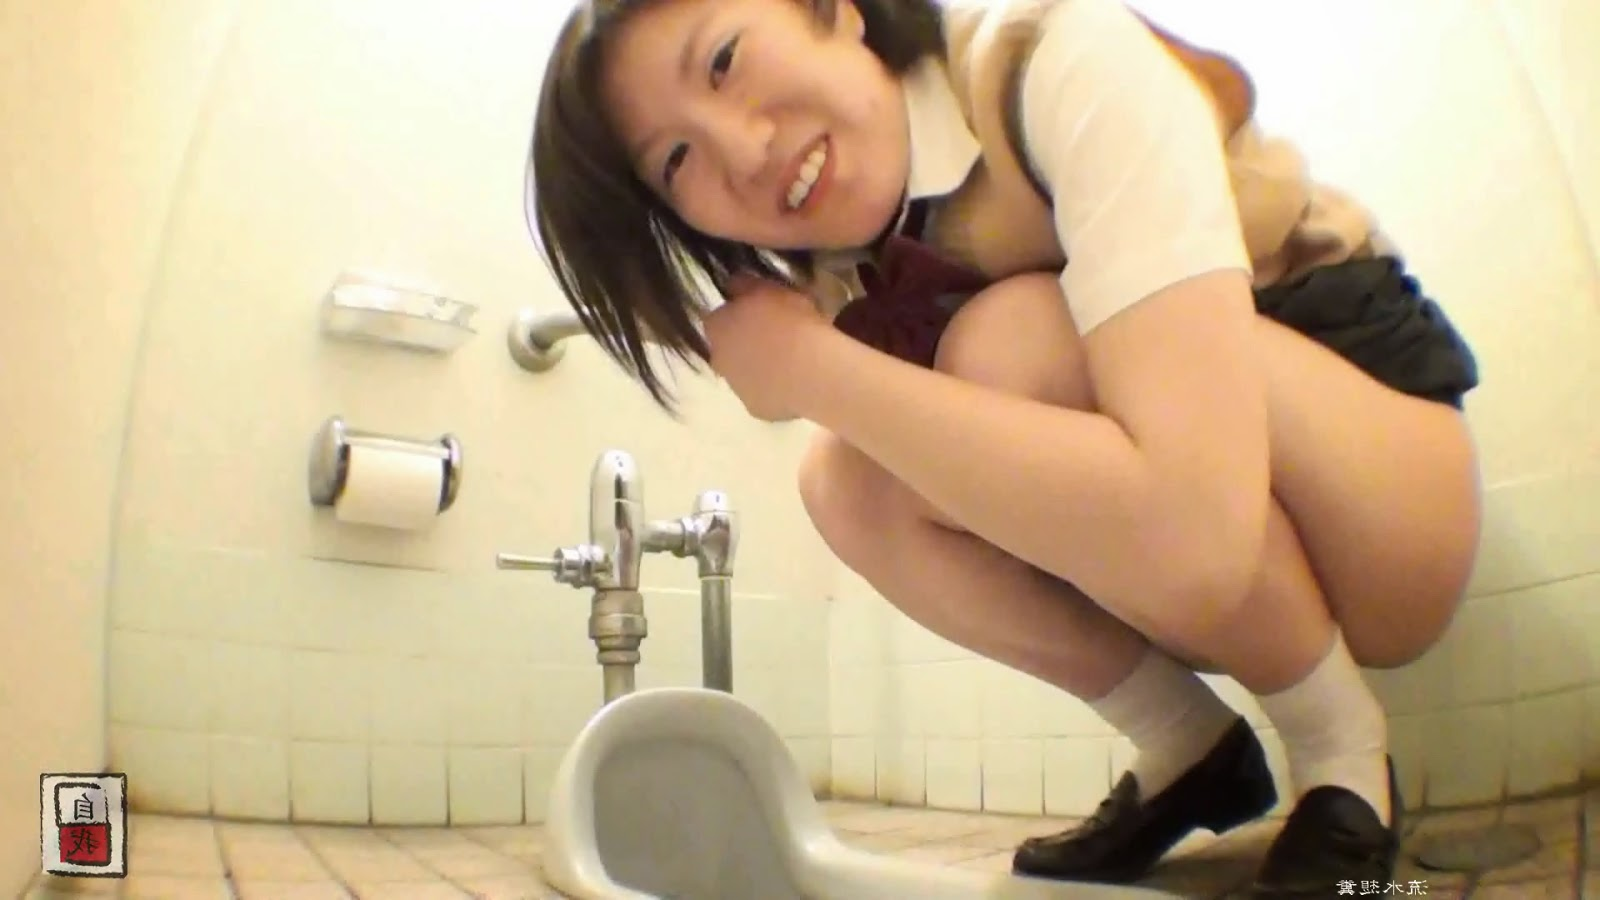 Seems girl pooping in japanese toilet